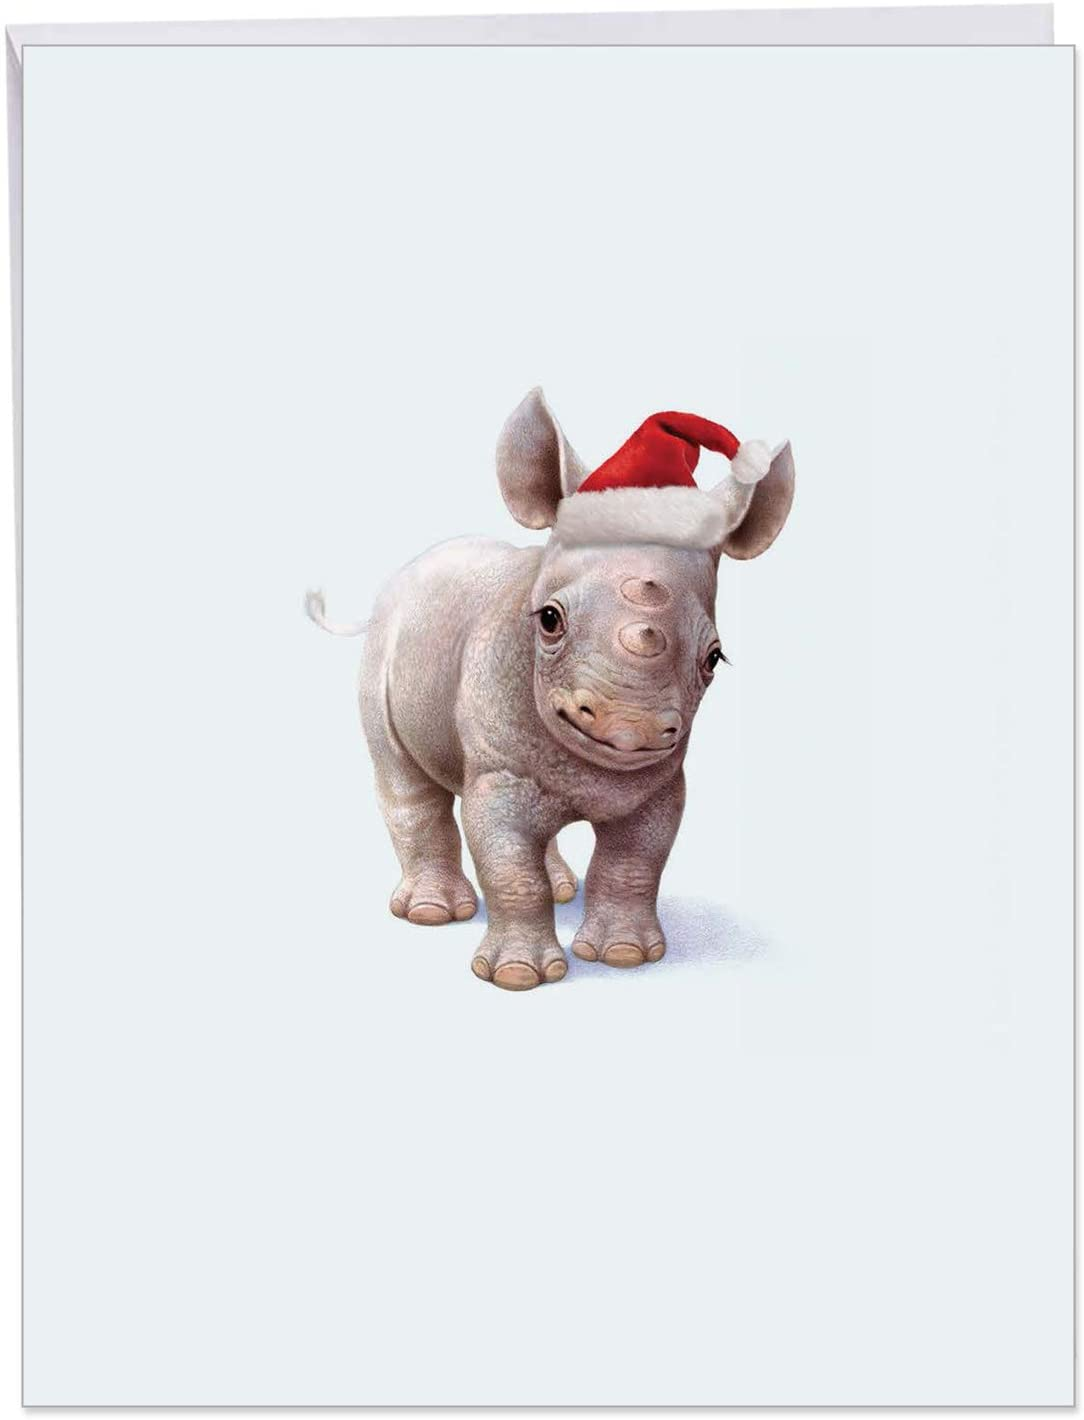 Big 'Christmas Zoo Babies' Merry Christmas Greeting Card - Featuring a Sweet and Adorable Baby Rhino Wearing a Christmas Hat With Envelope 8.5 x 11 Inch - Happy Holidays! J6726IXSG